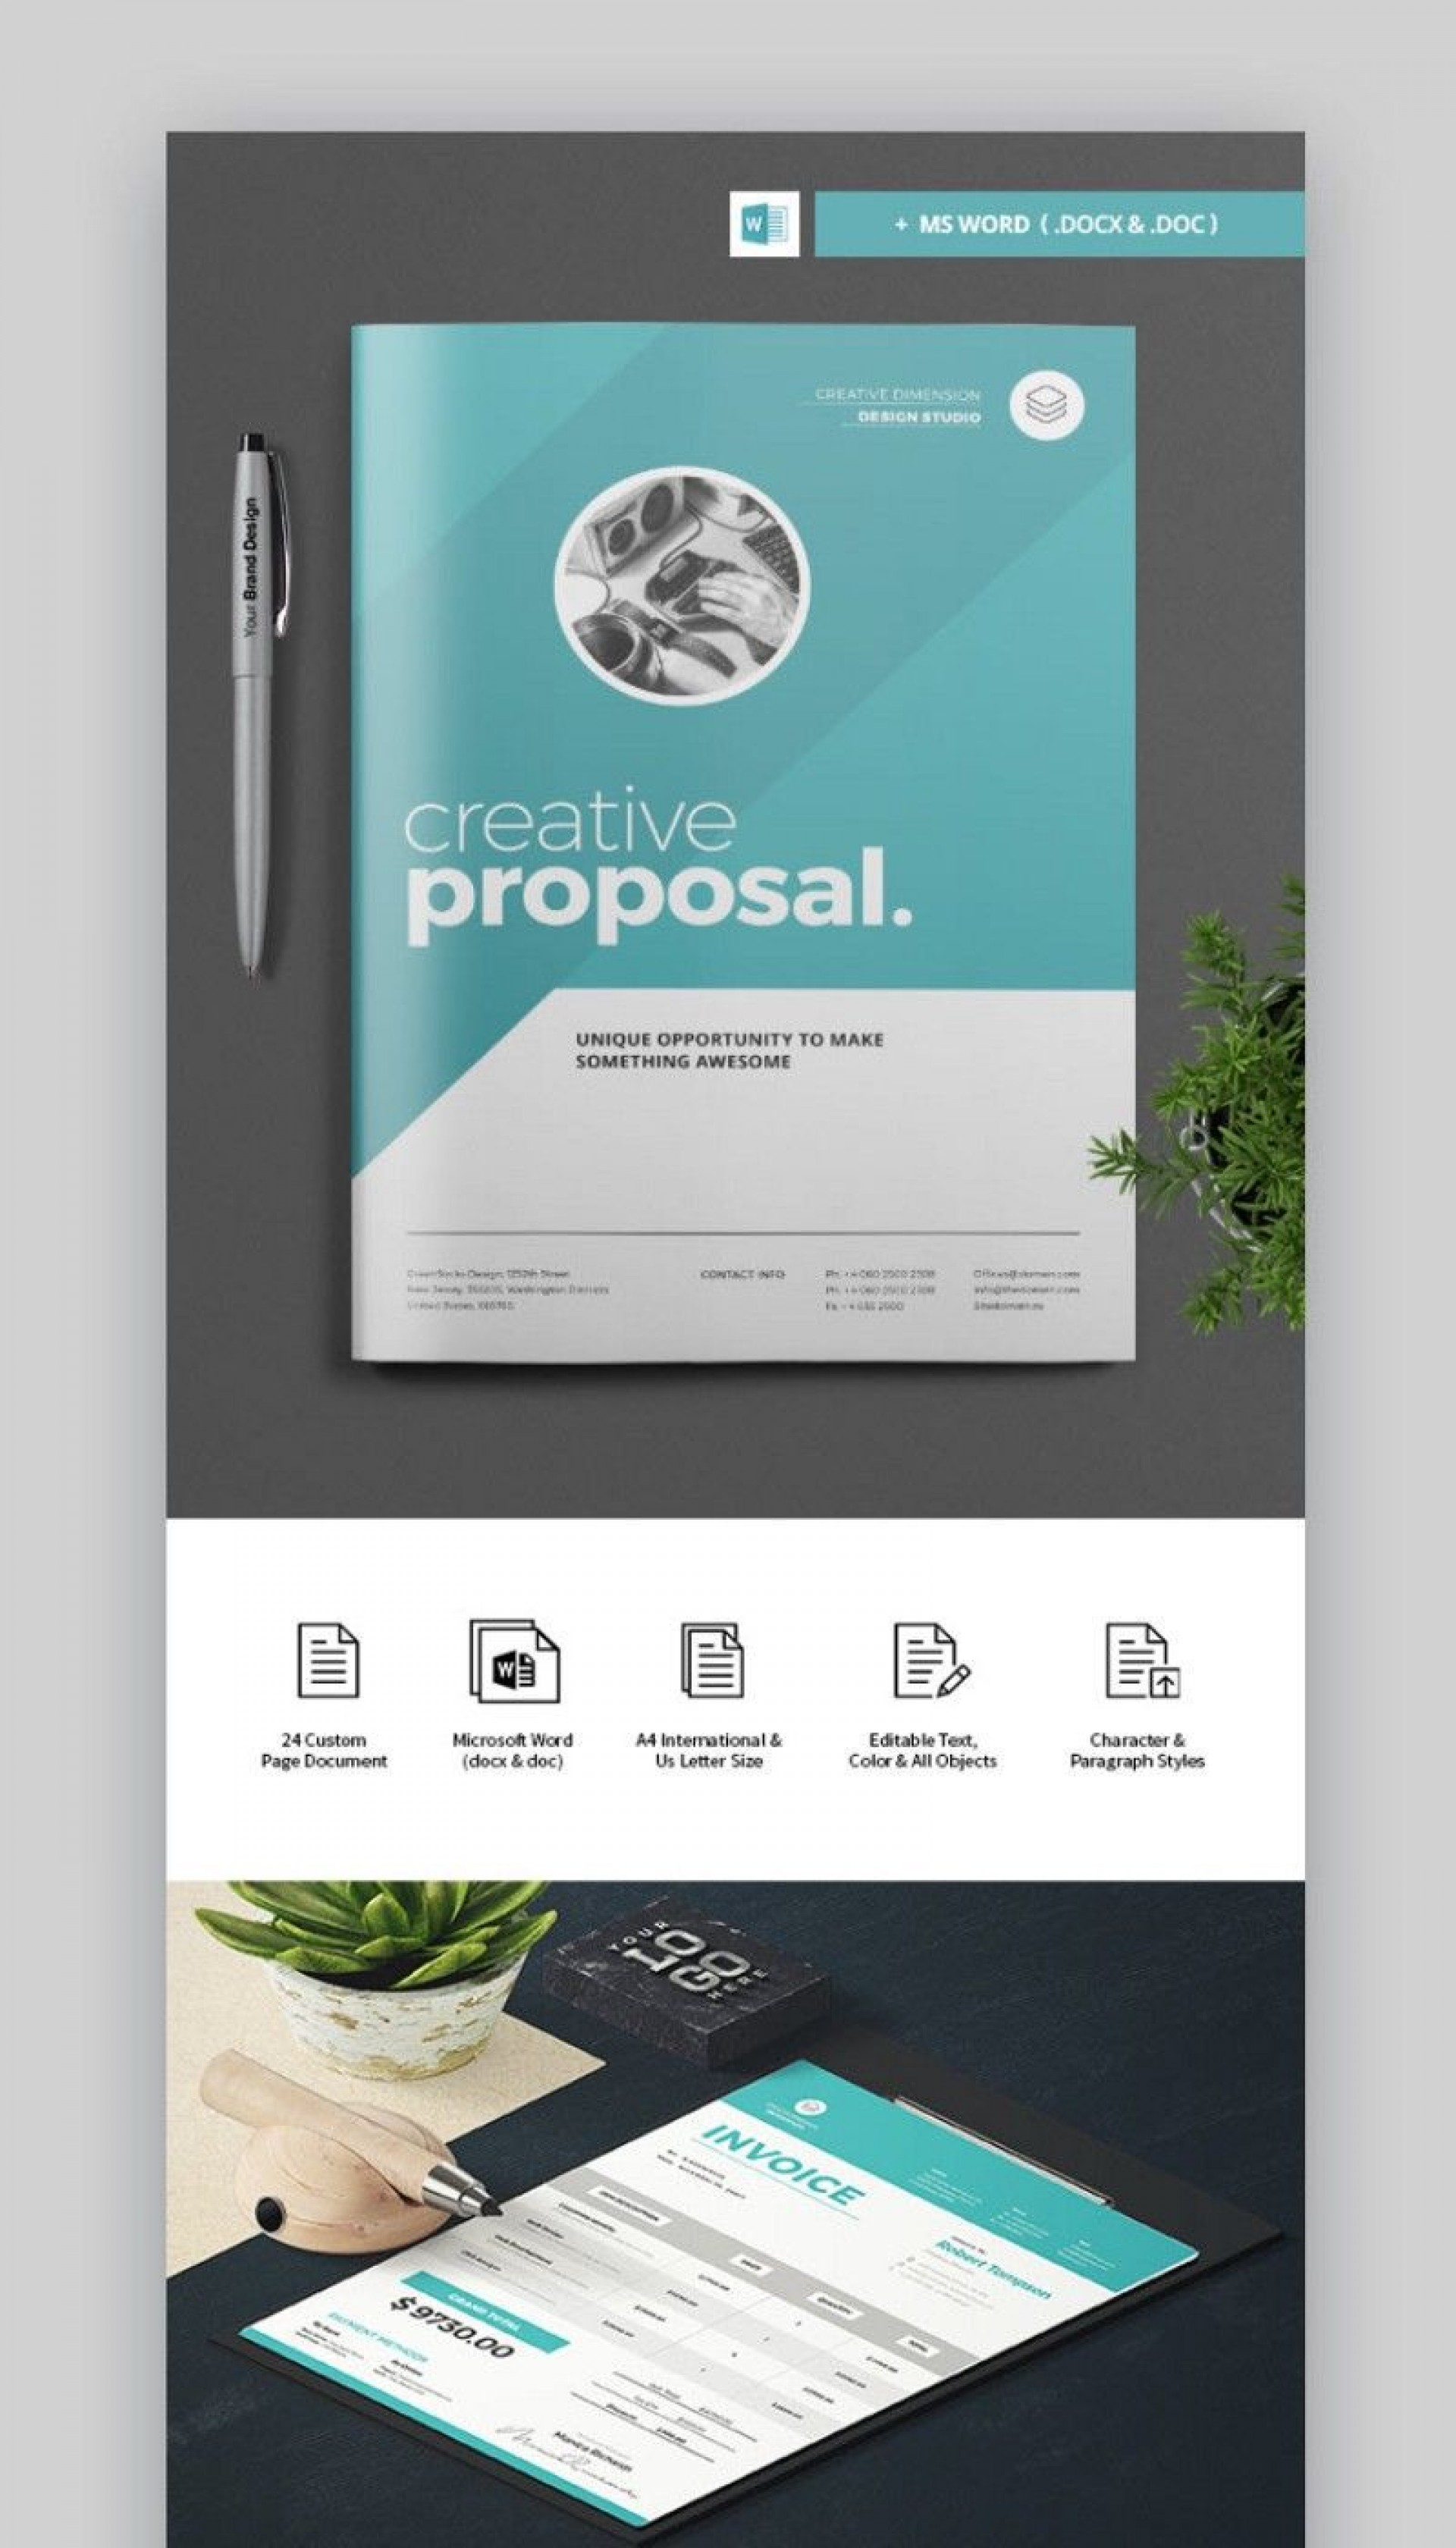 003 Imposing Microsoft Word Proposal Template Free High Def  Project Download Budget1920